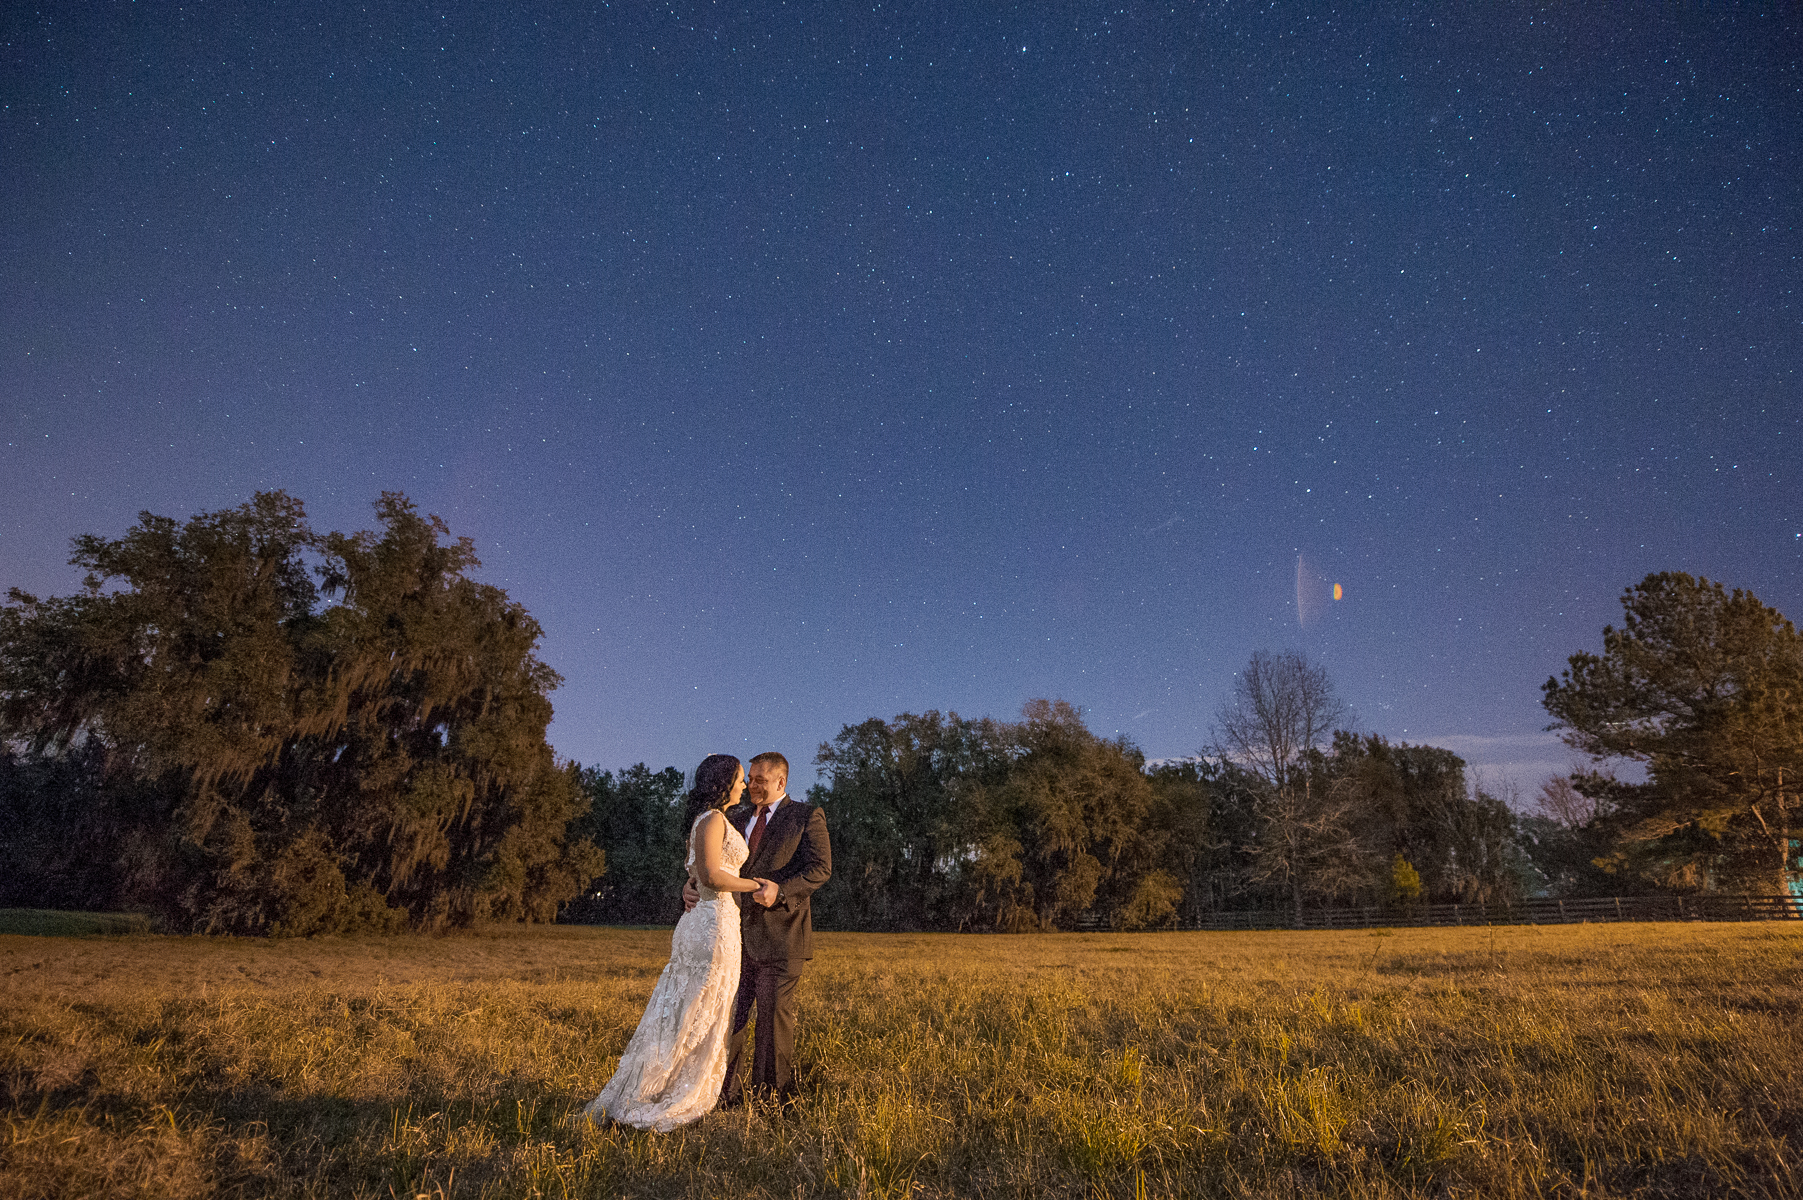 Florida Night Wedding Photographer